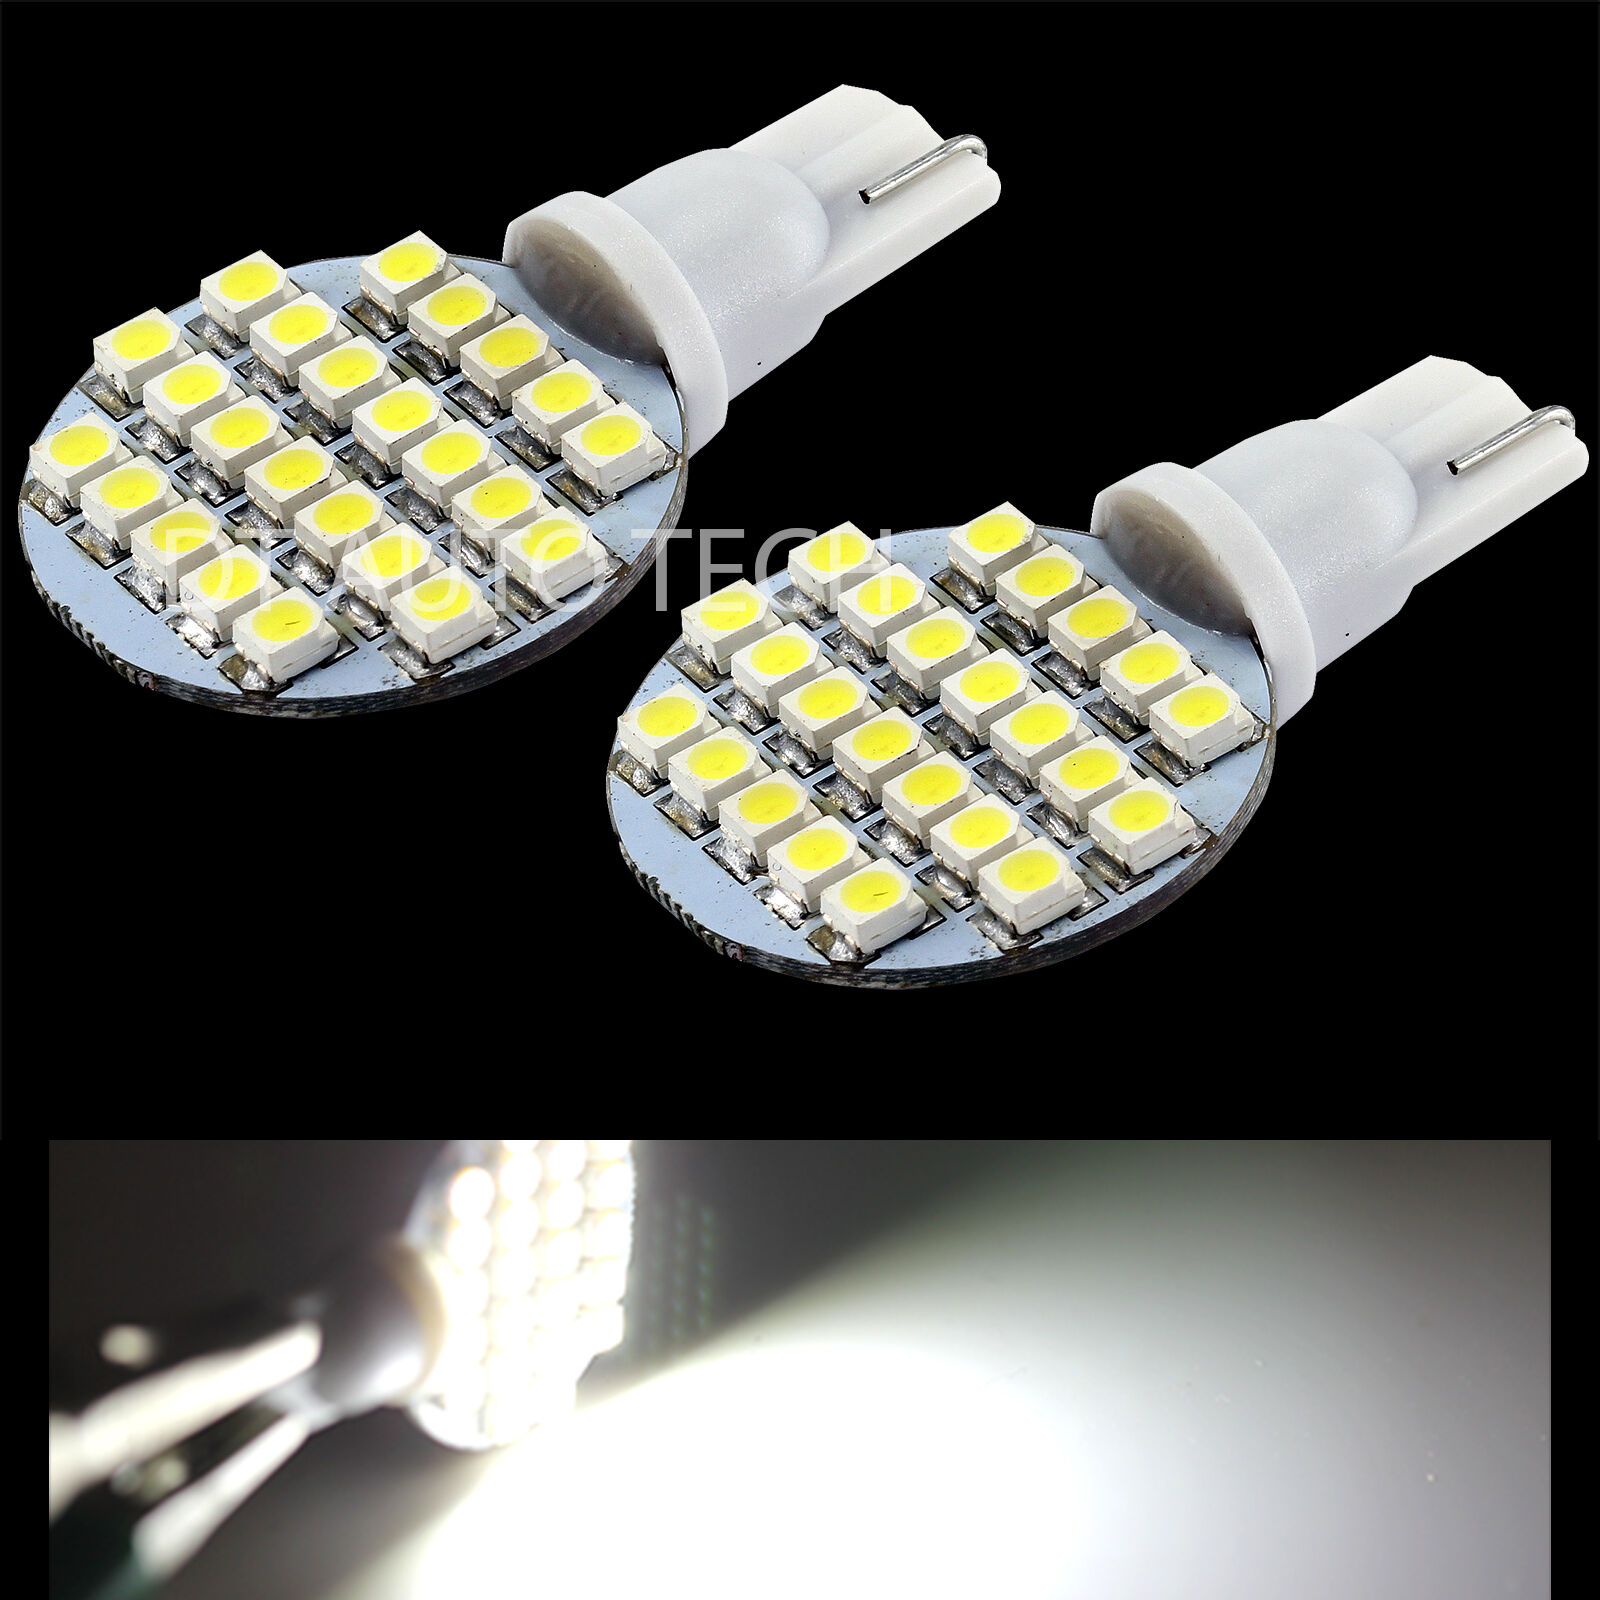 10x t10 921 194 rv trailer interior 12v led light bulbs 24 smd ebay. Black Bedroom Furniture Sets. Home Design Ideas